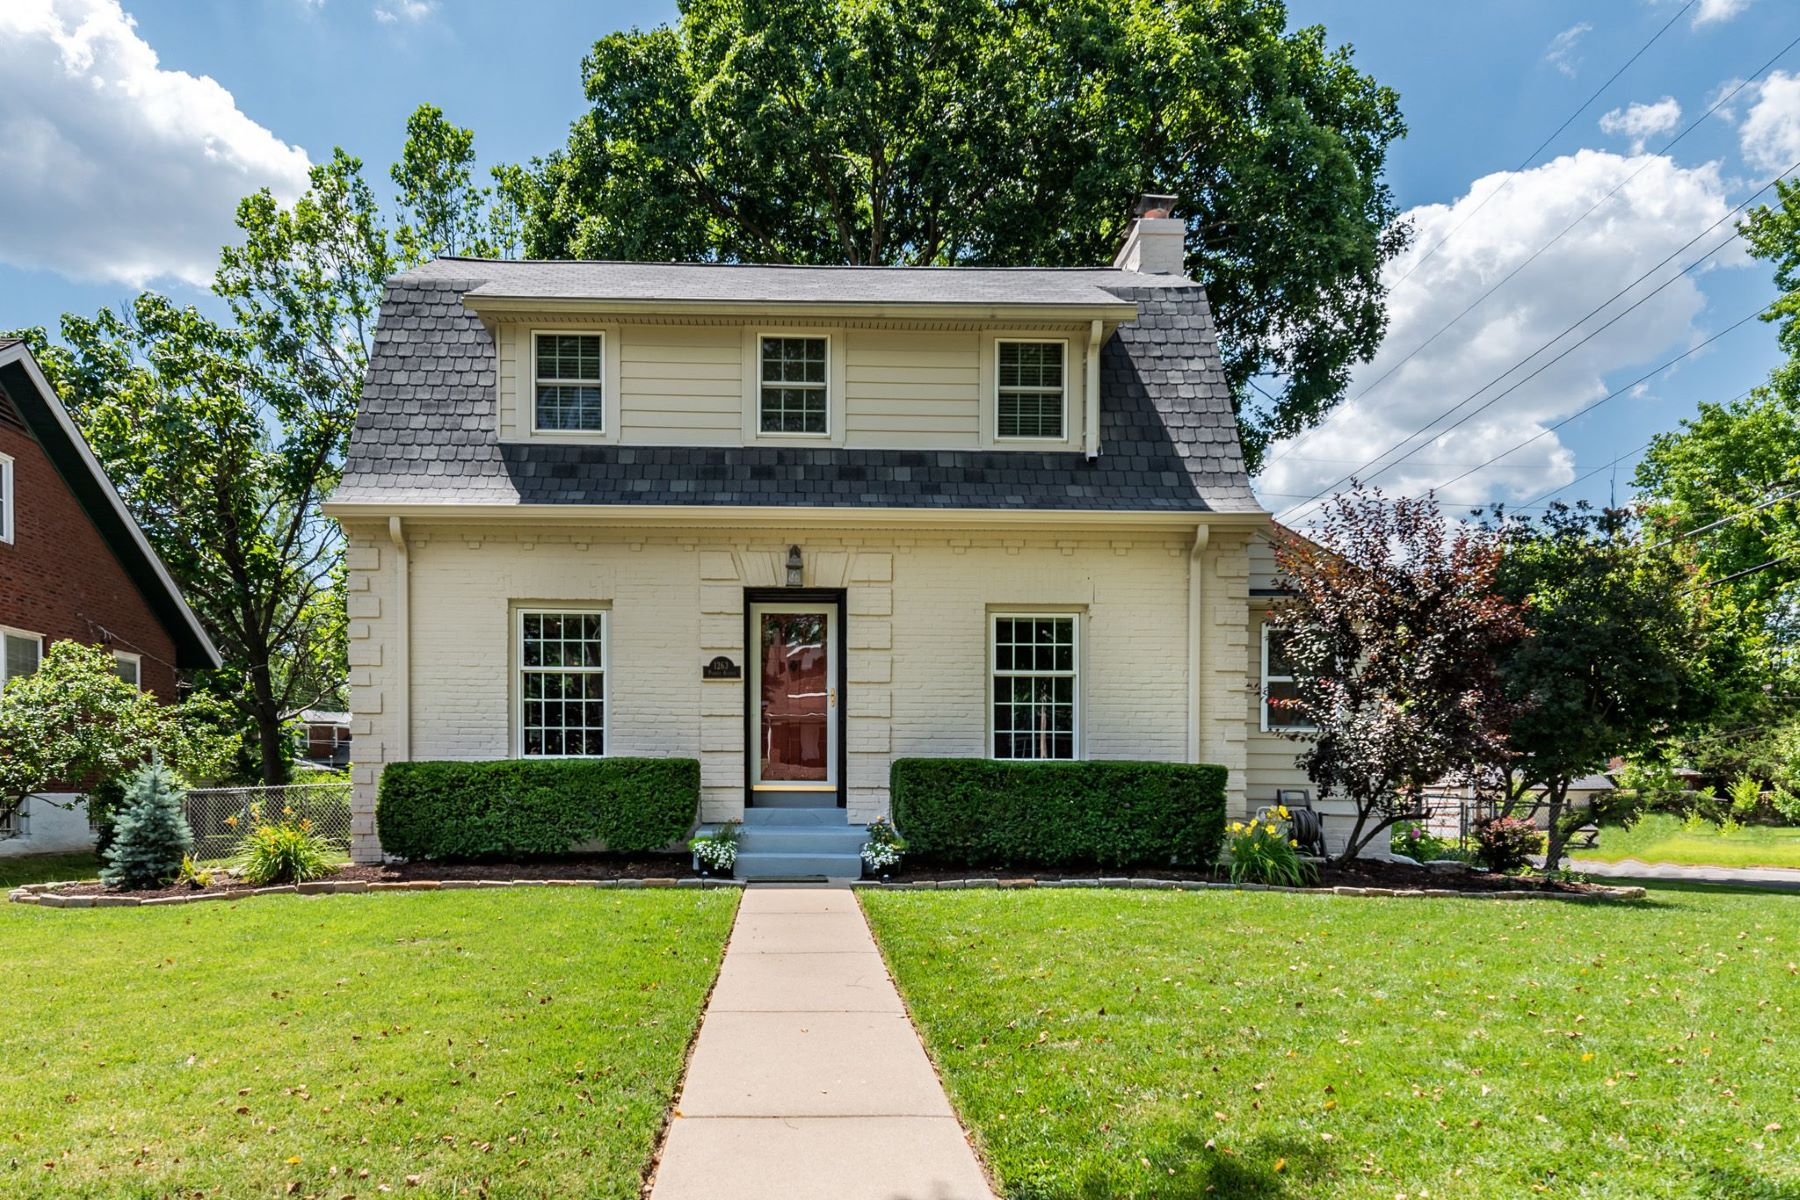 Single Family Homes for Sale at Conveniently Located University City Home 1263 Purdue Avenue University City, Missouri 63130 United States